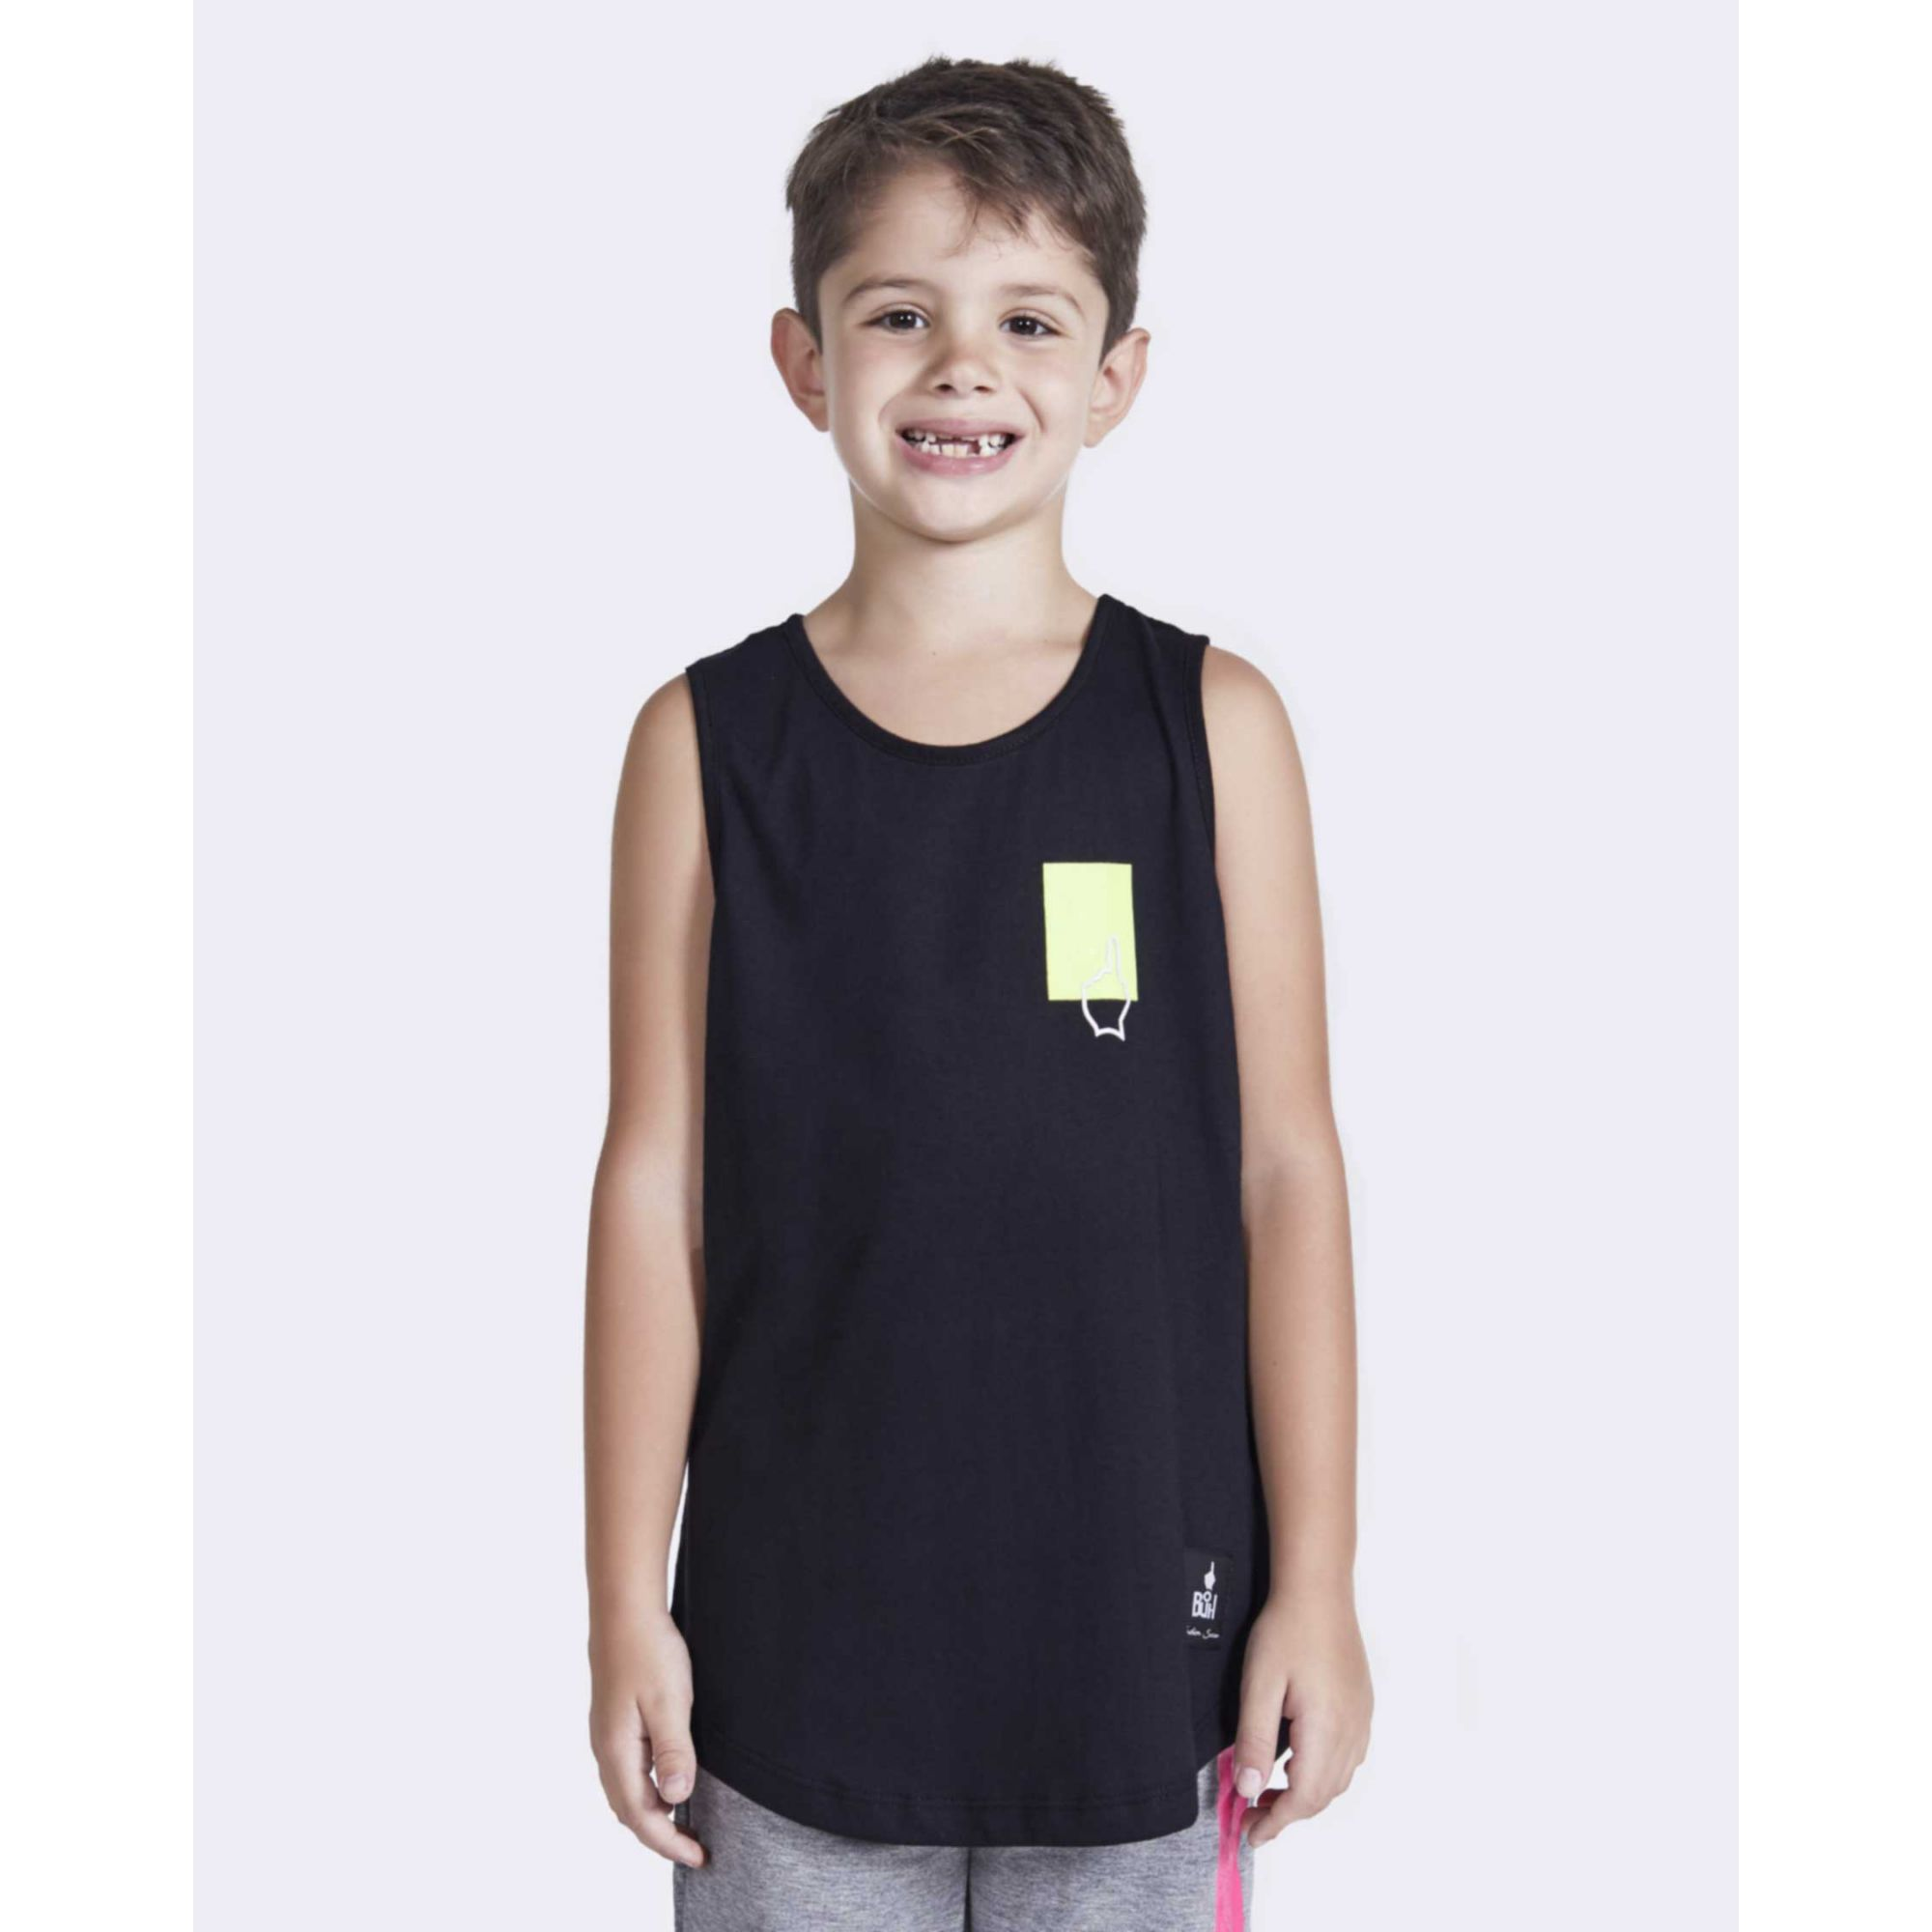 Regata Buh Kids Square Black & Neon